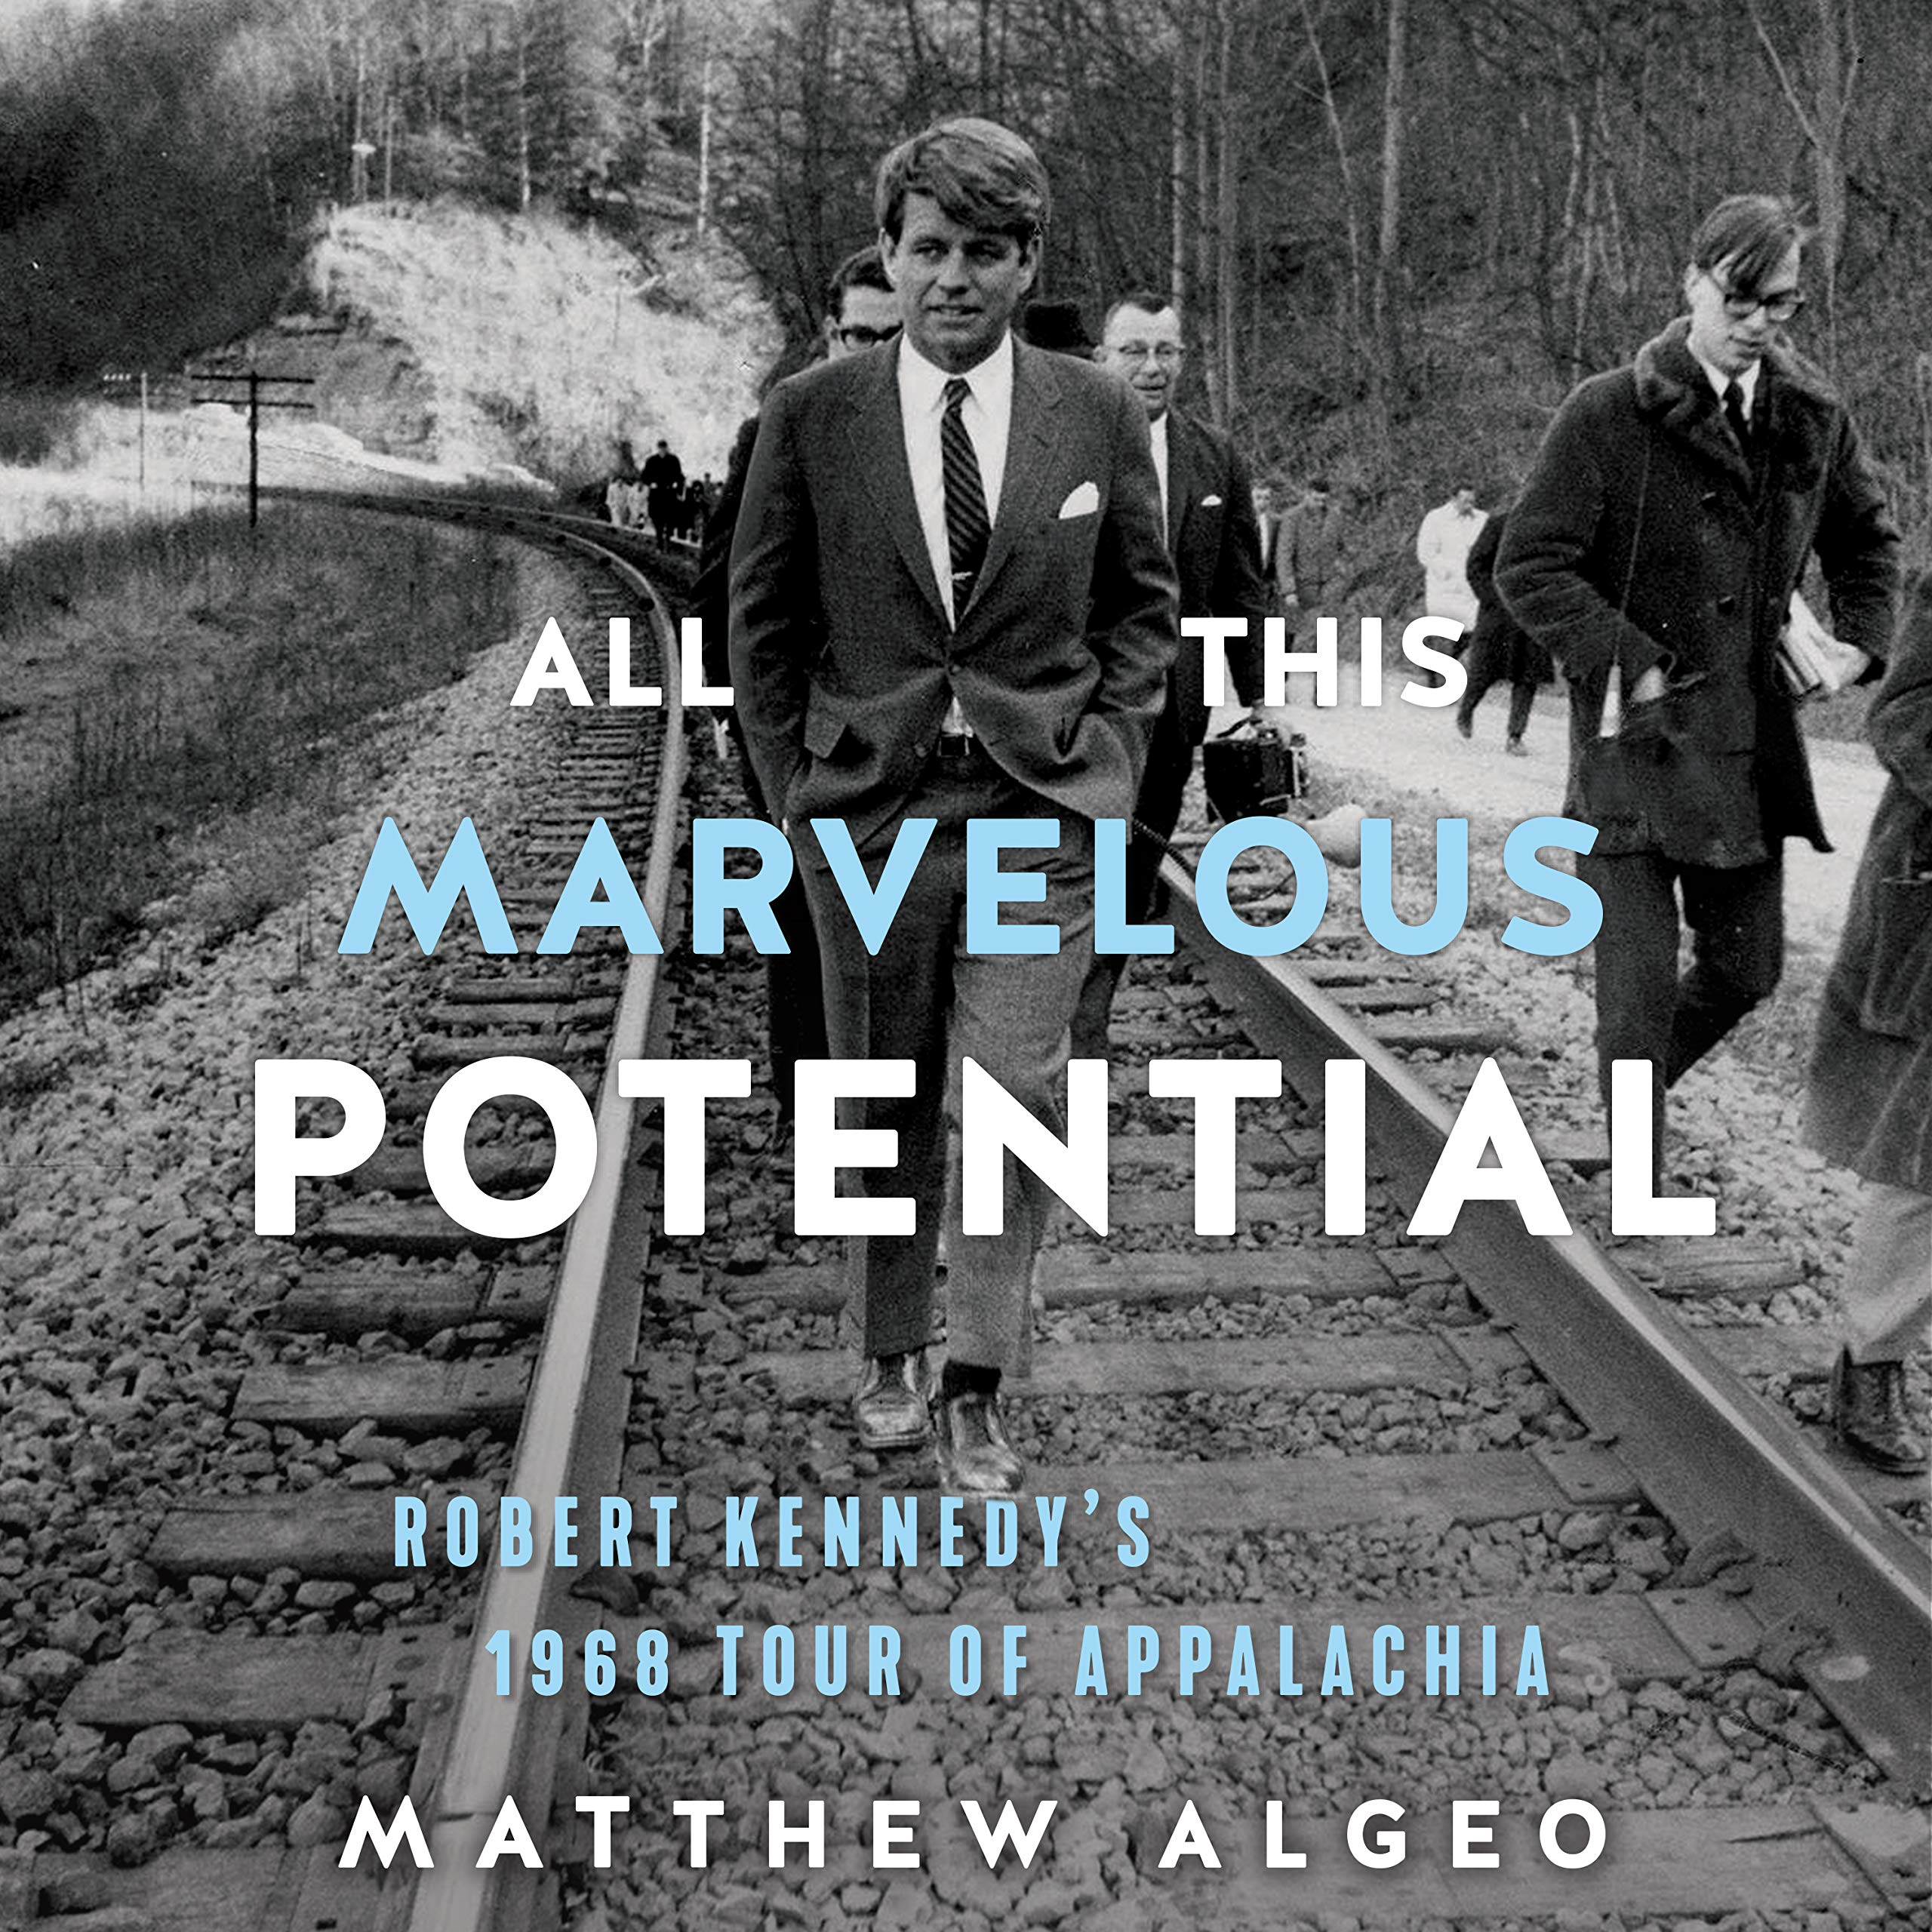 All This Marvelous Potential Robert Kennedy S 1968 Tour Of